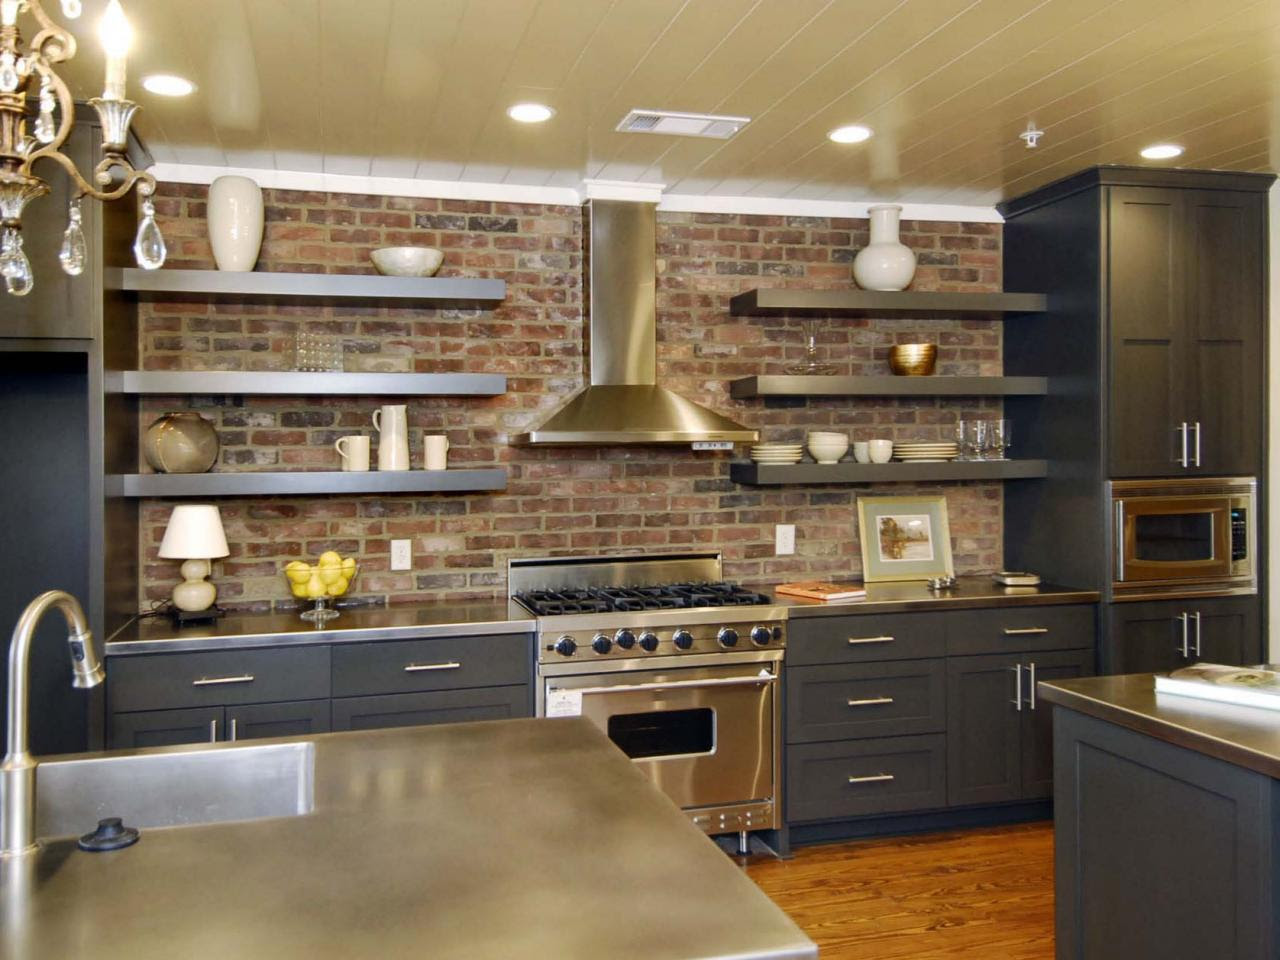 Images of Beautifully-Organized Open Kitchen Shelving ...